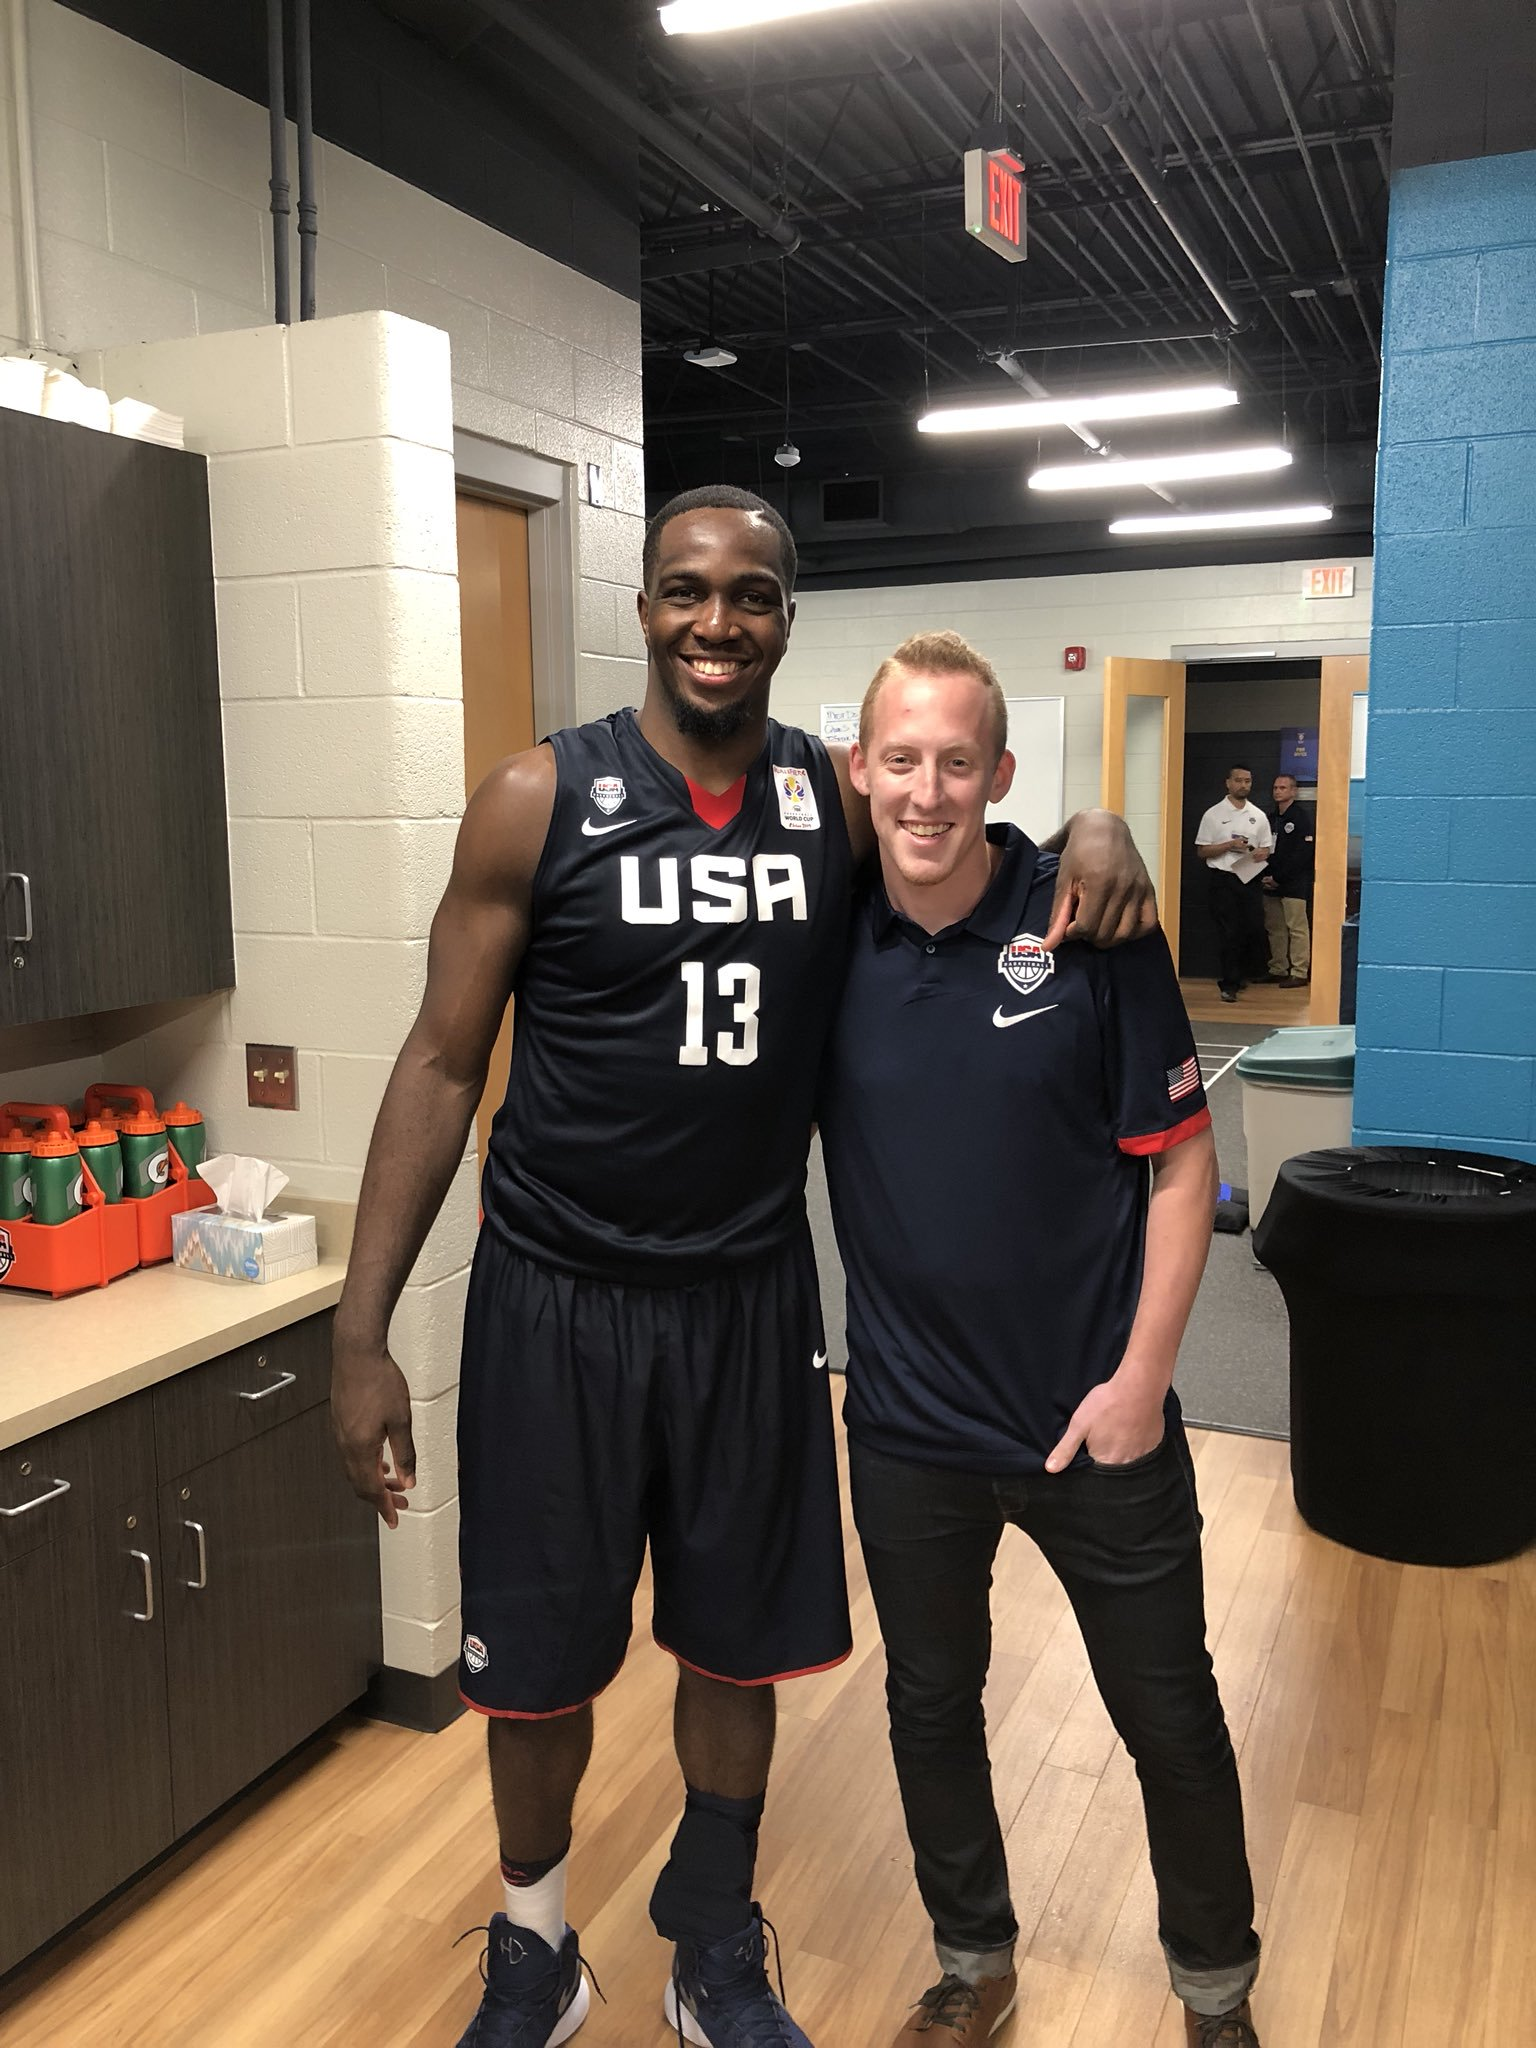 Team USA and Stony Brook Alum: Jameel Warney